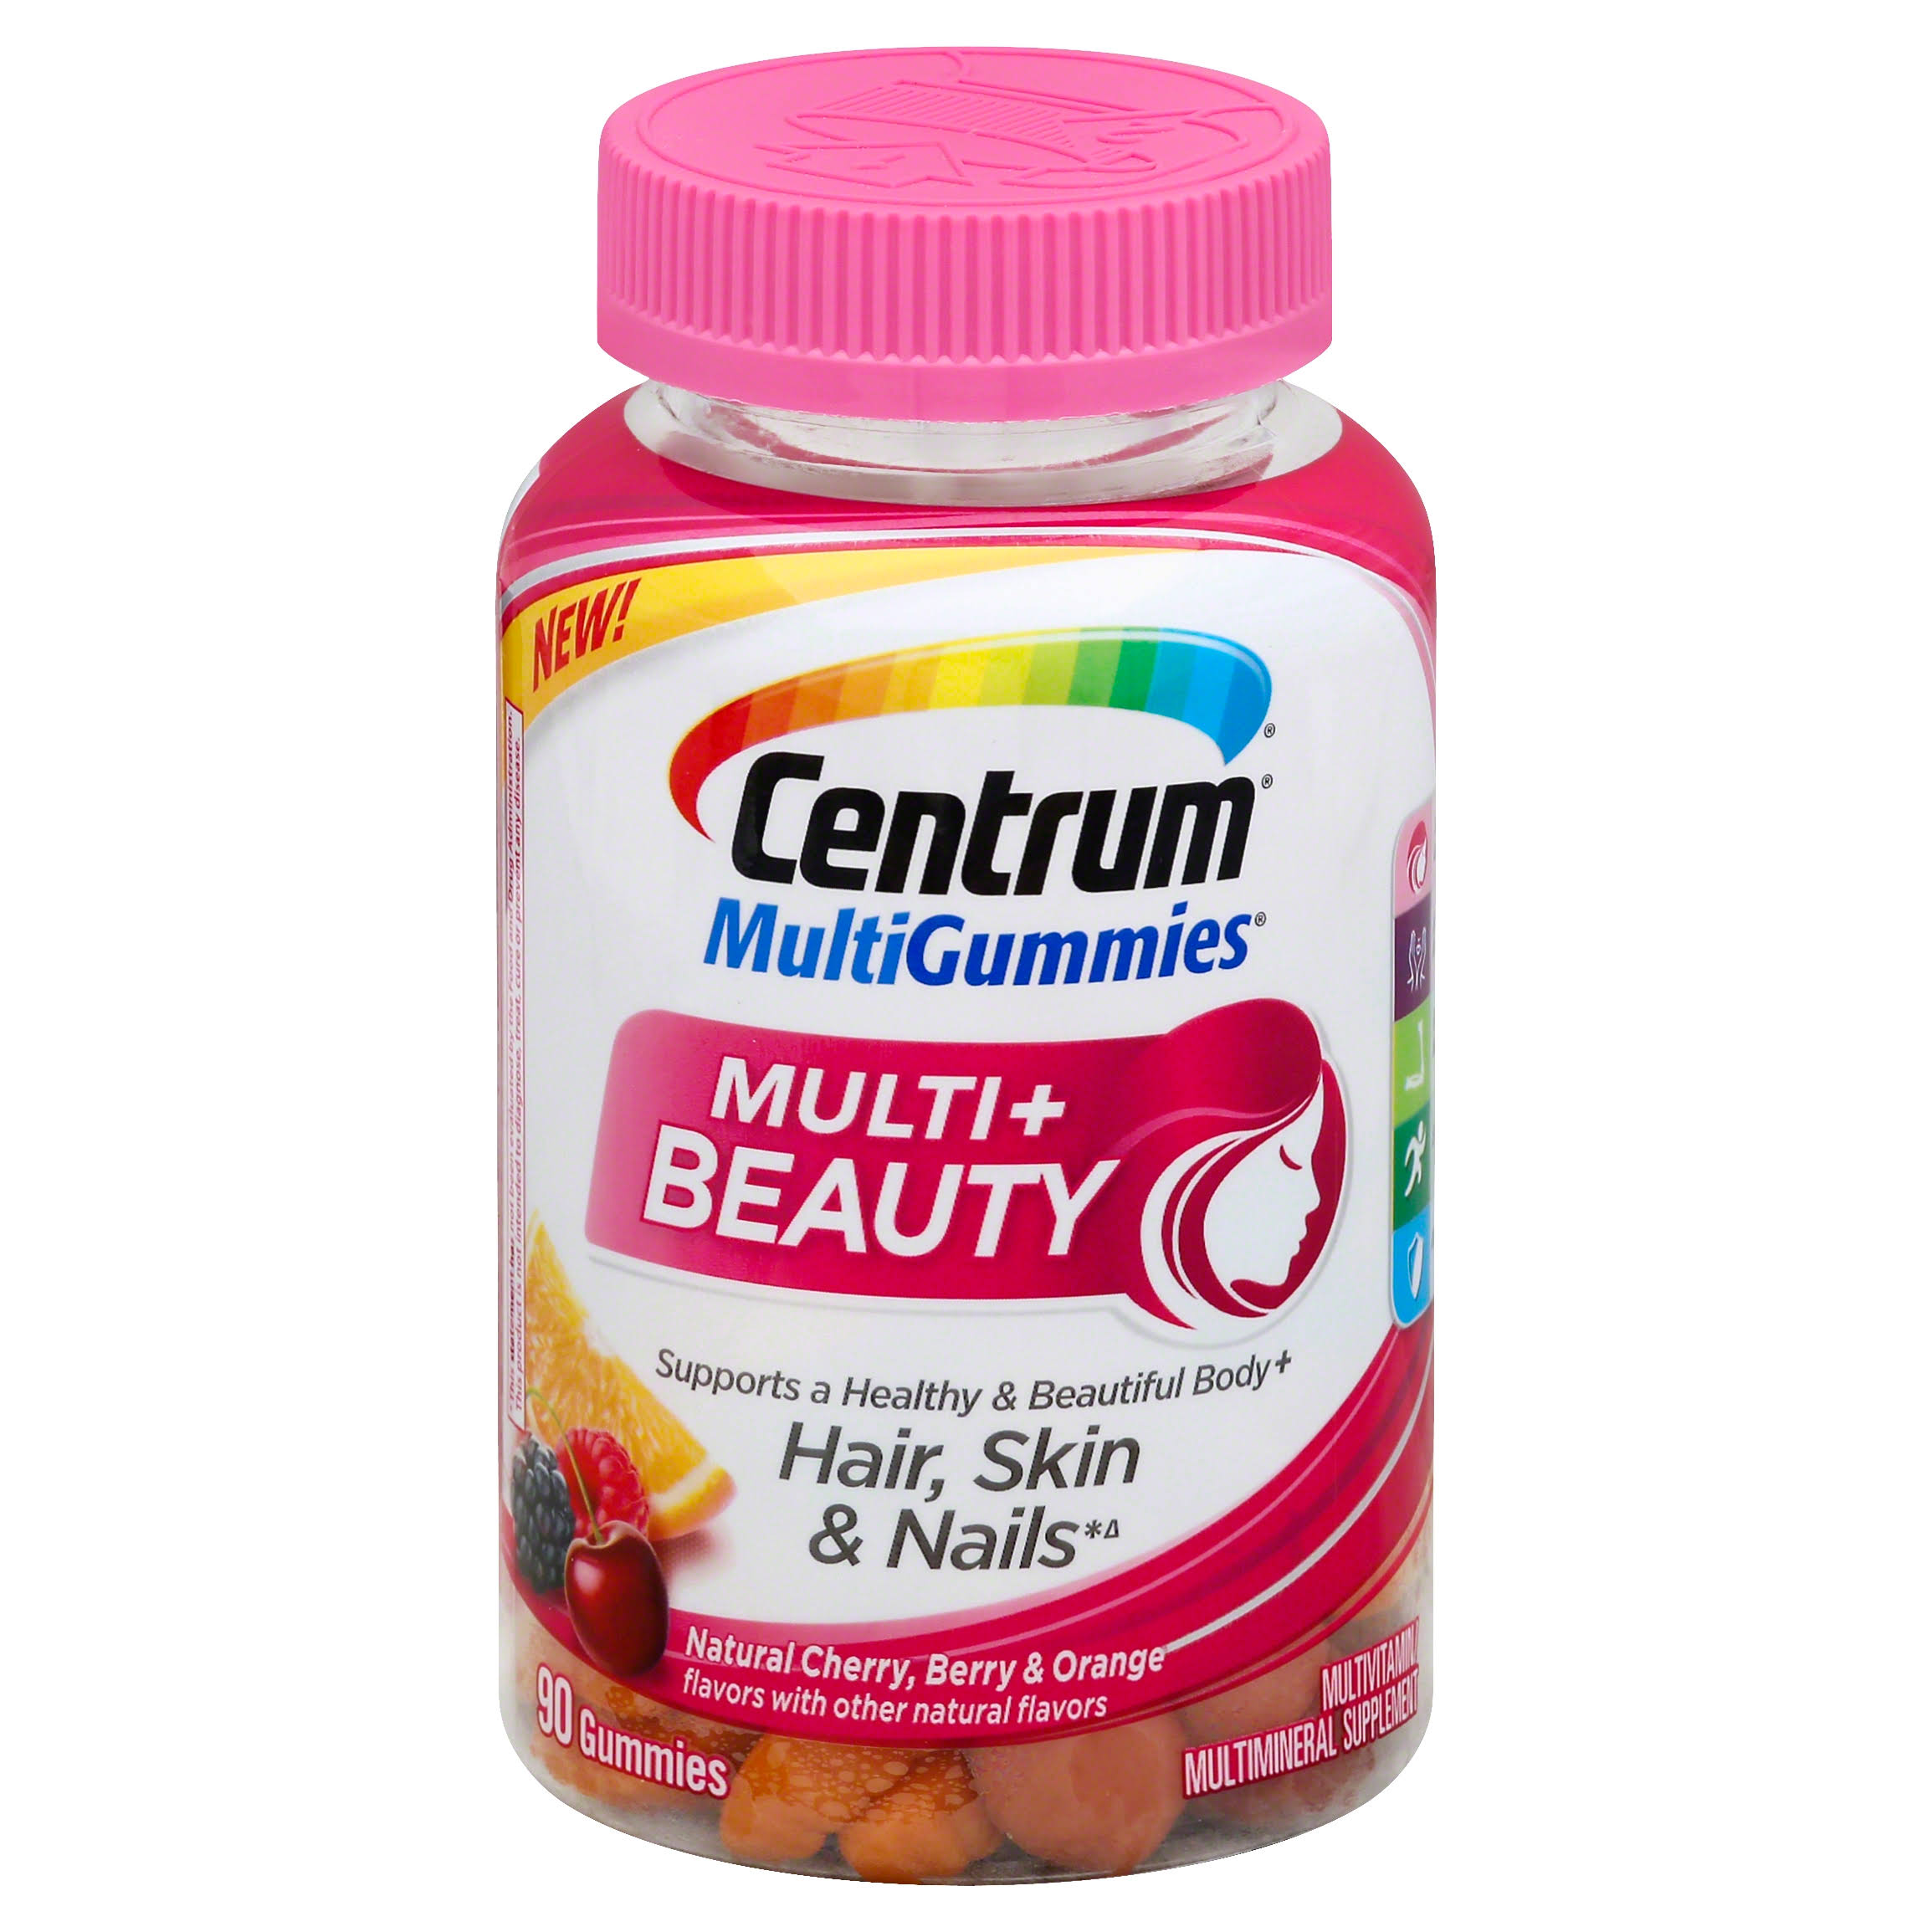 Centrum Multi Gummies Multi+ Beauty - Natural Cherry, Berry & Orange